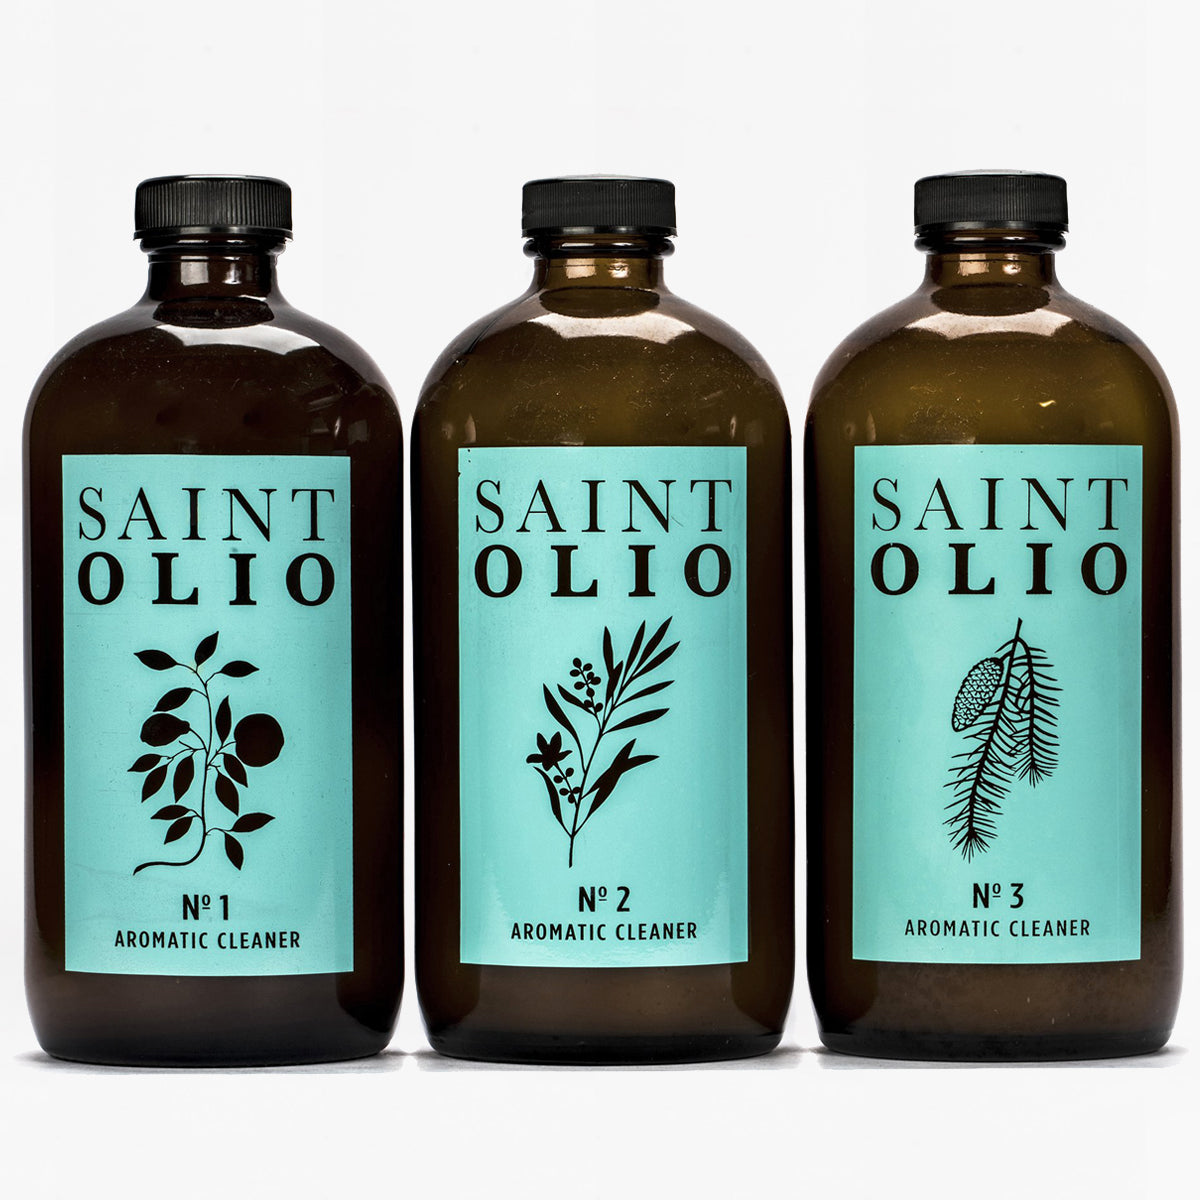 Saint Olio aromatic cleaner